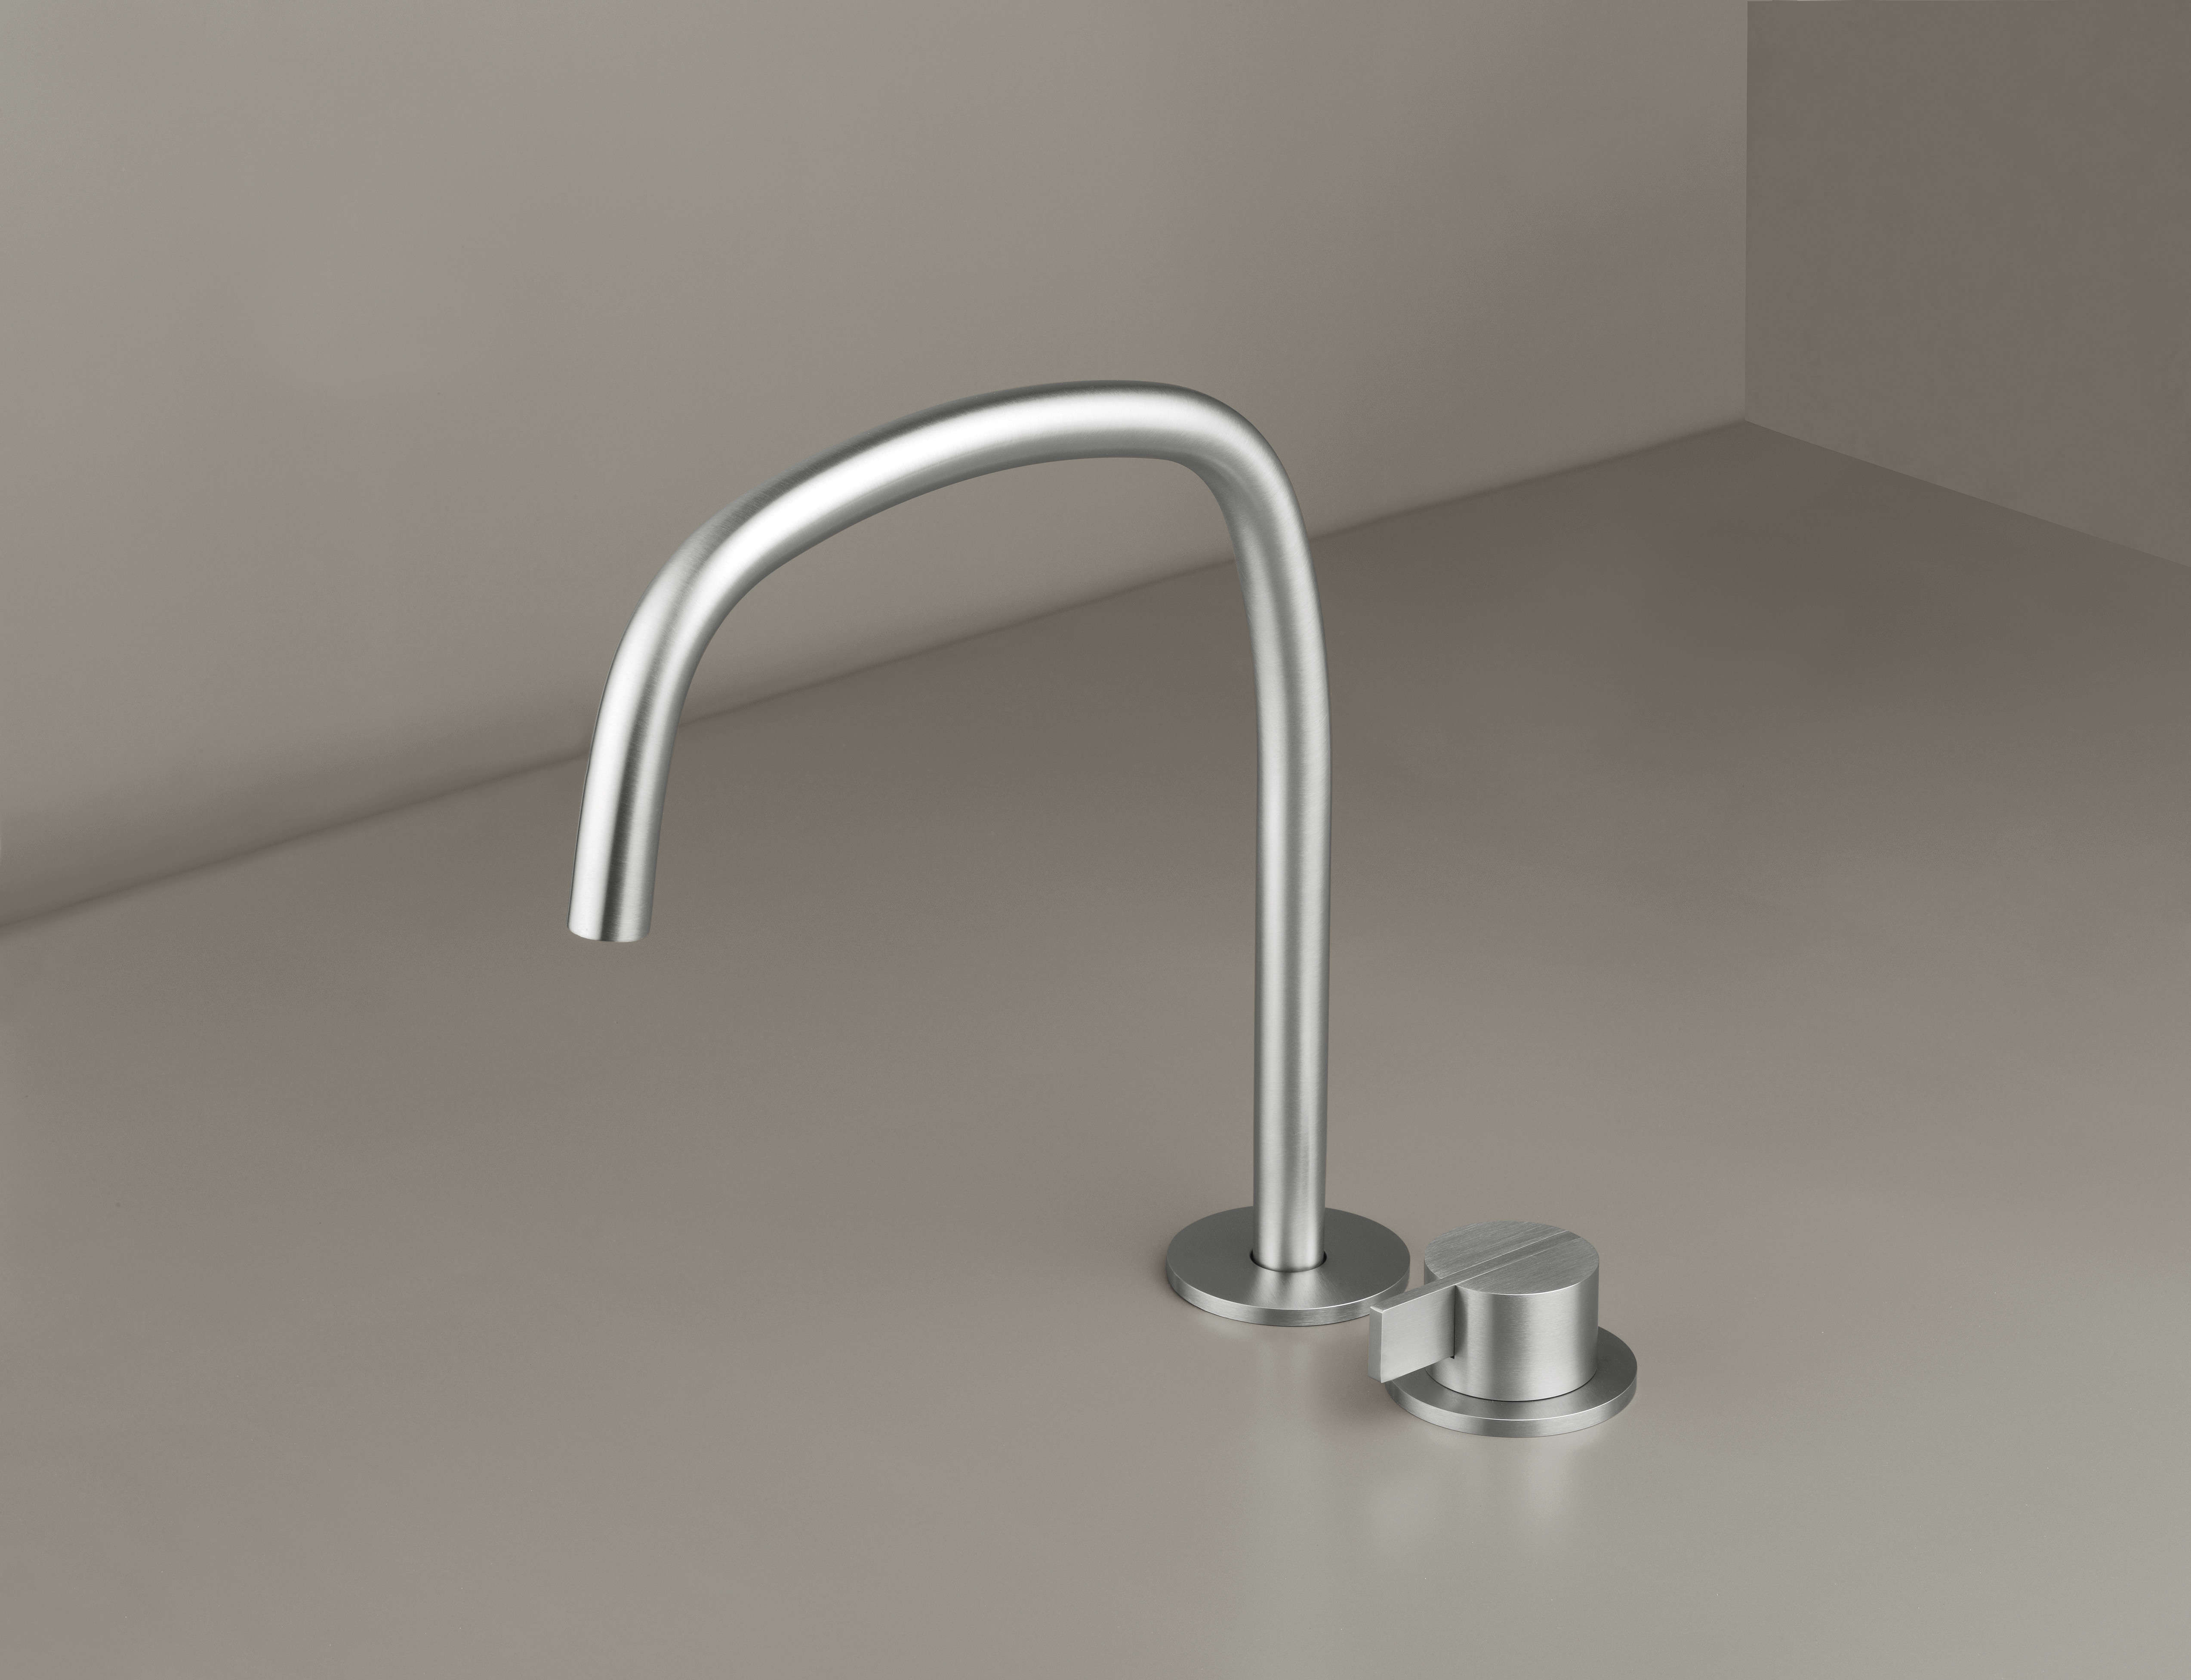 piet boon bath faucets & fixtures for cocoon 16